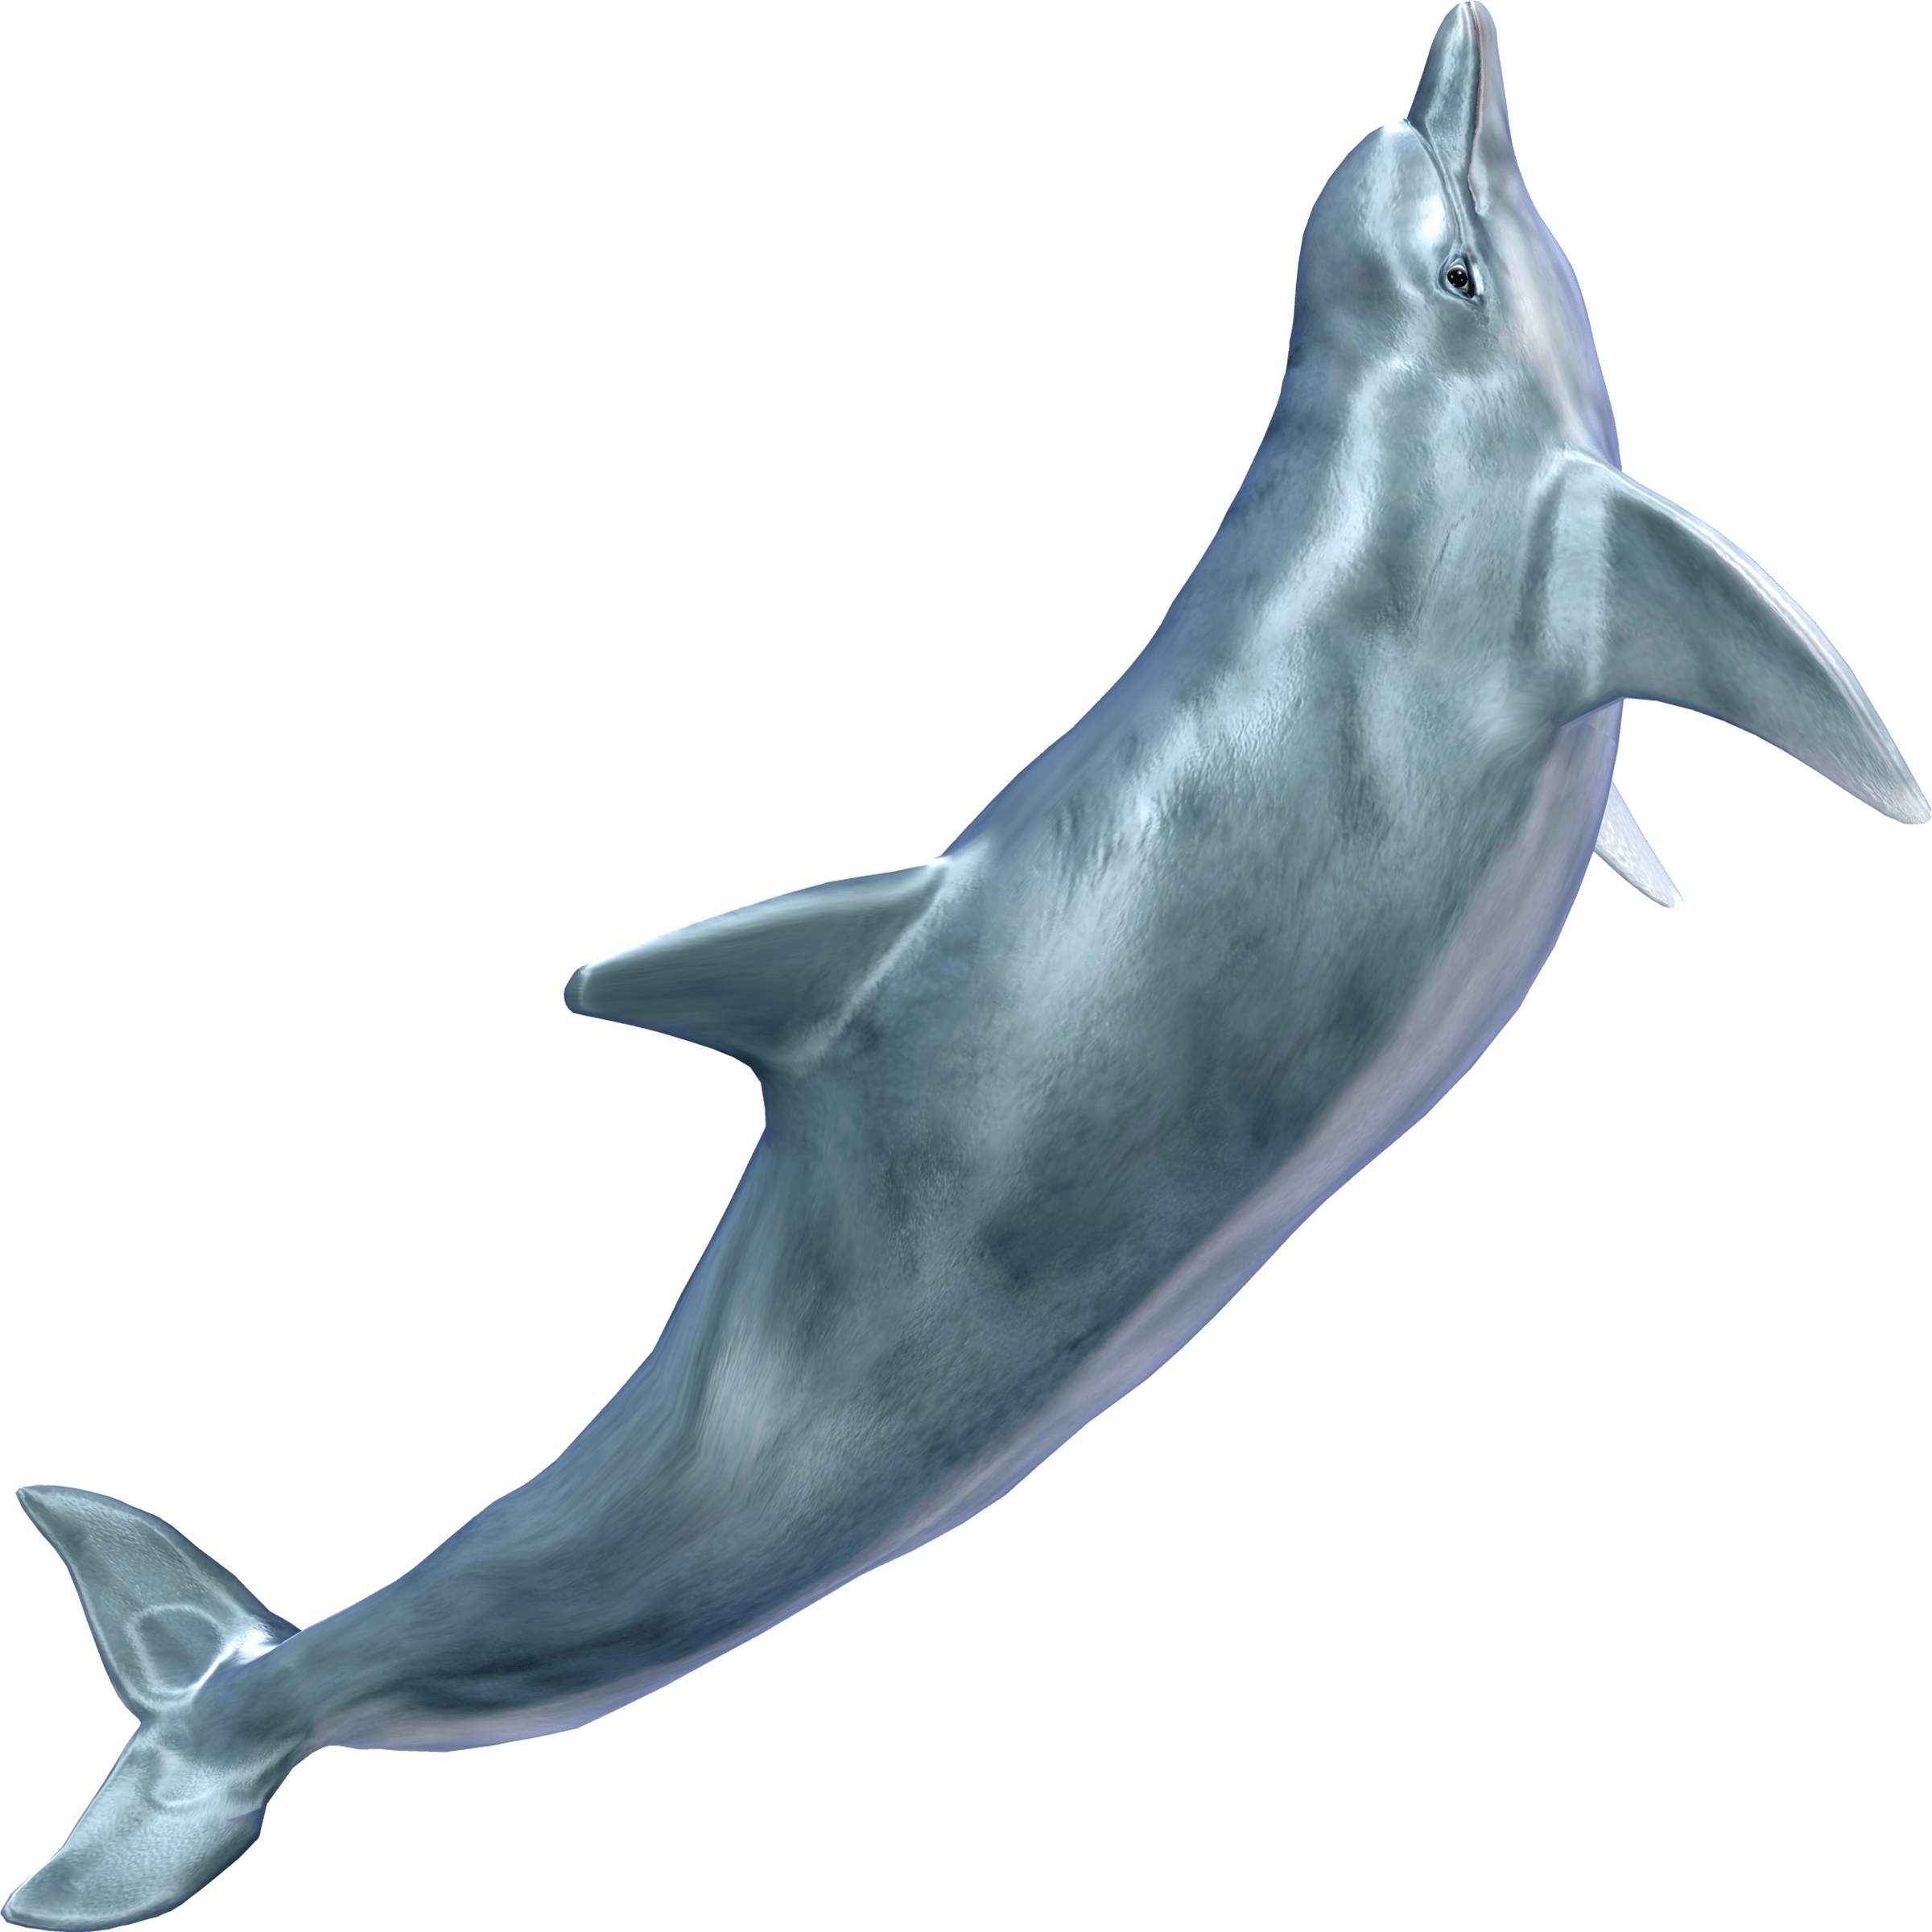 Dolphin Transparent Picture